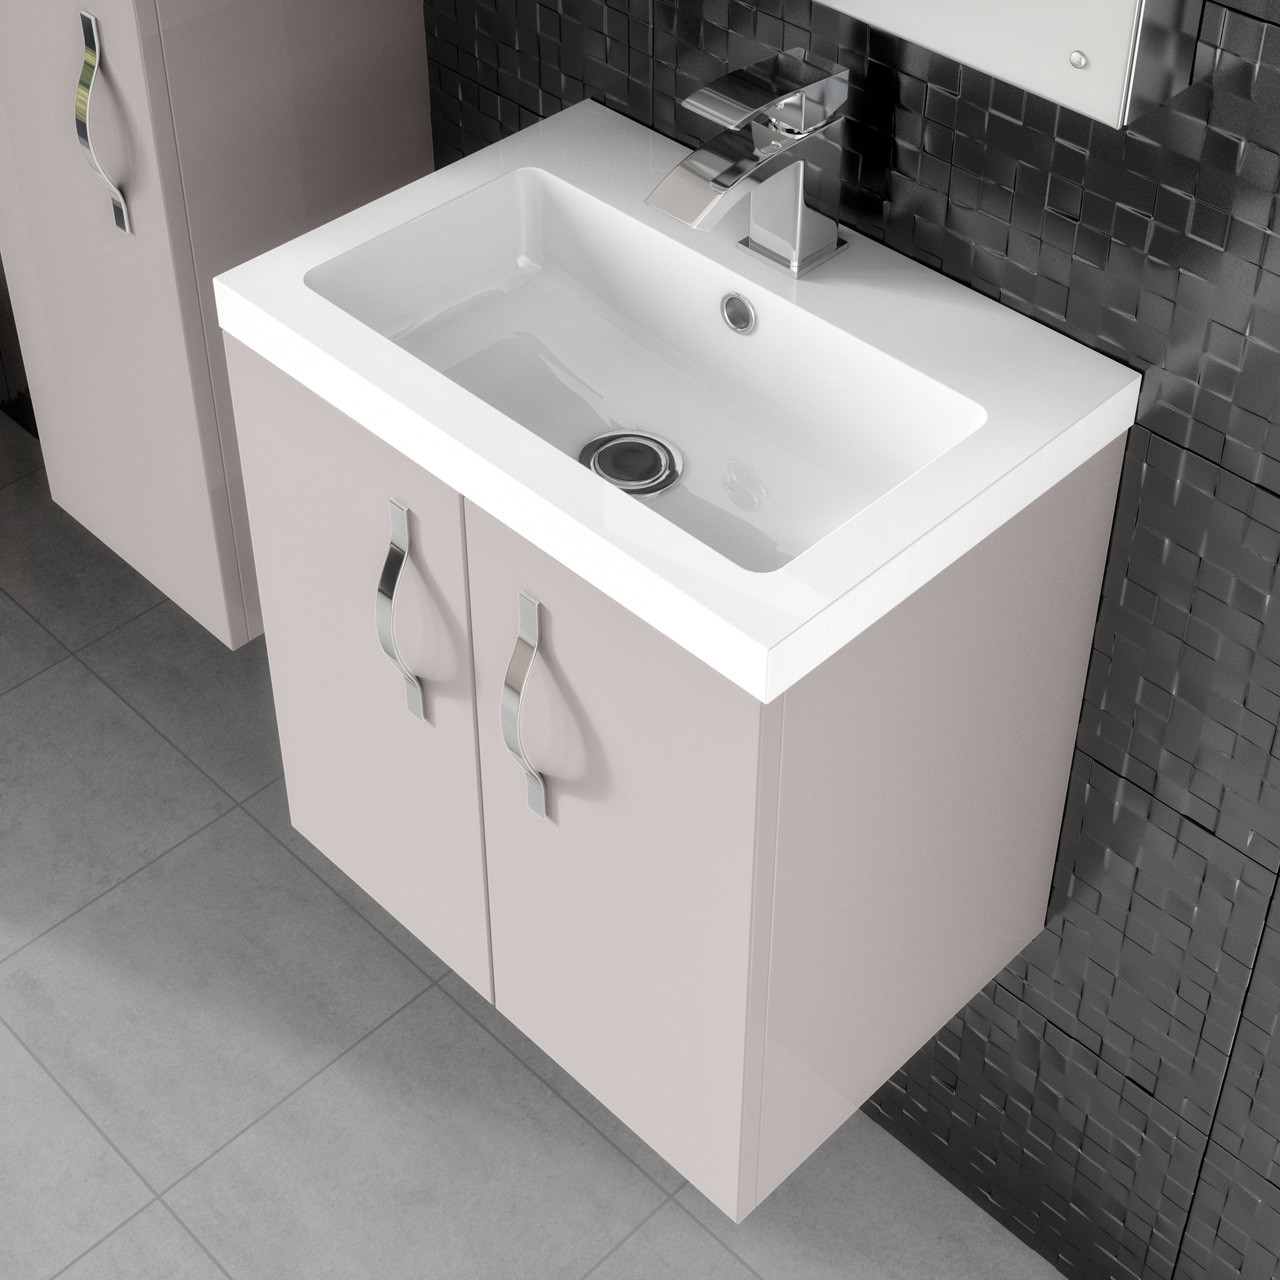 Hudson reed bathroom cabinets - Hudson Reed Apollo Cashmere Wall Hung 600mm Cabinet Basin Fma736 Pmb313